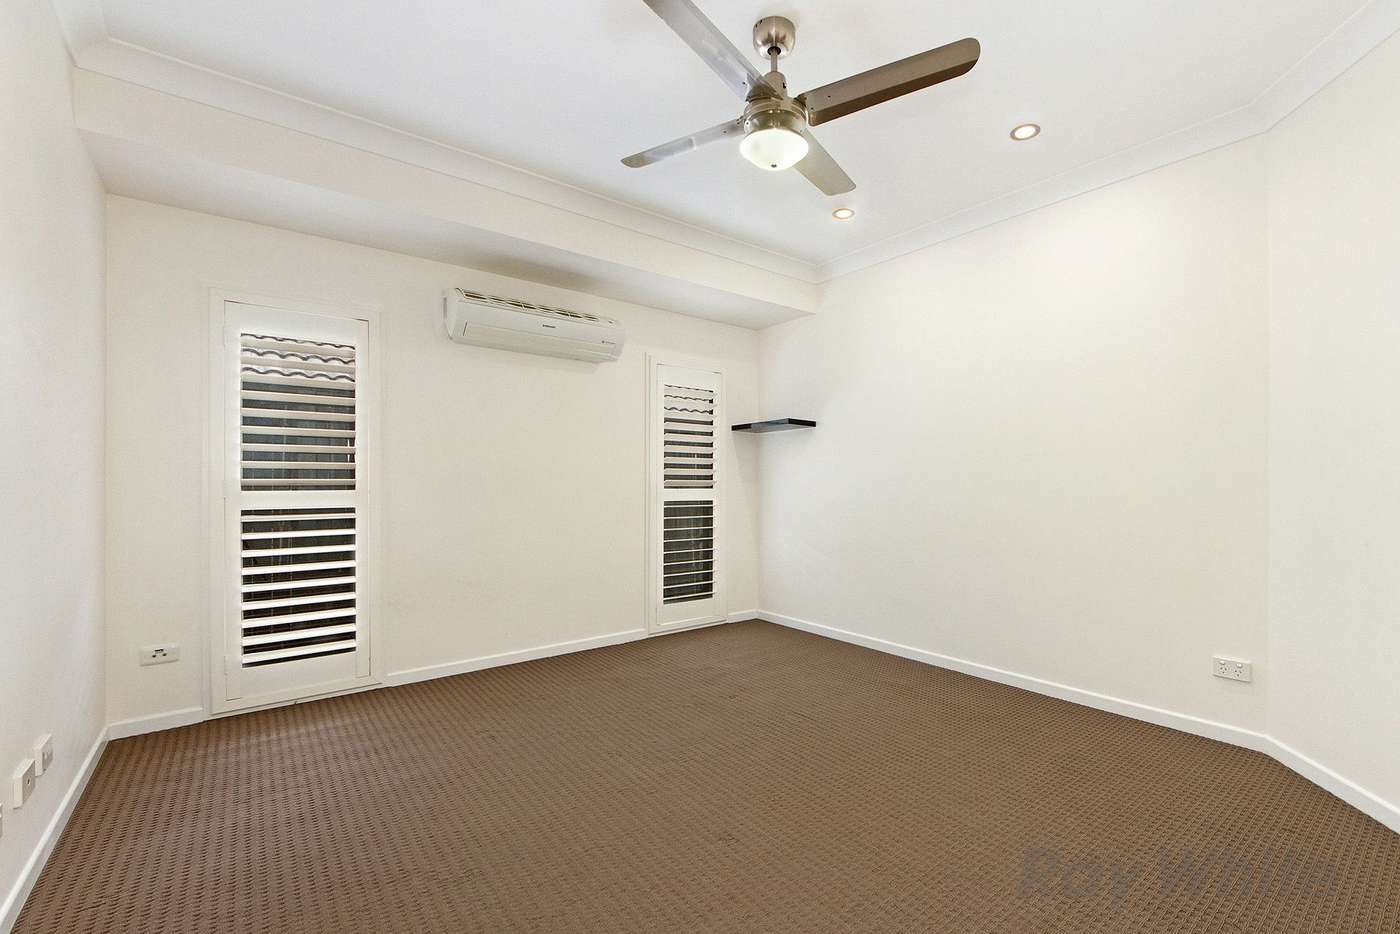 Seventh view of Homely house listing, 8 Summerhill Crescent, Ormeau Hills QLD 4208